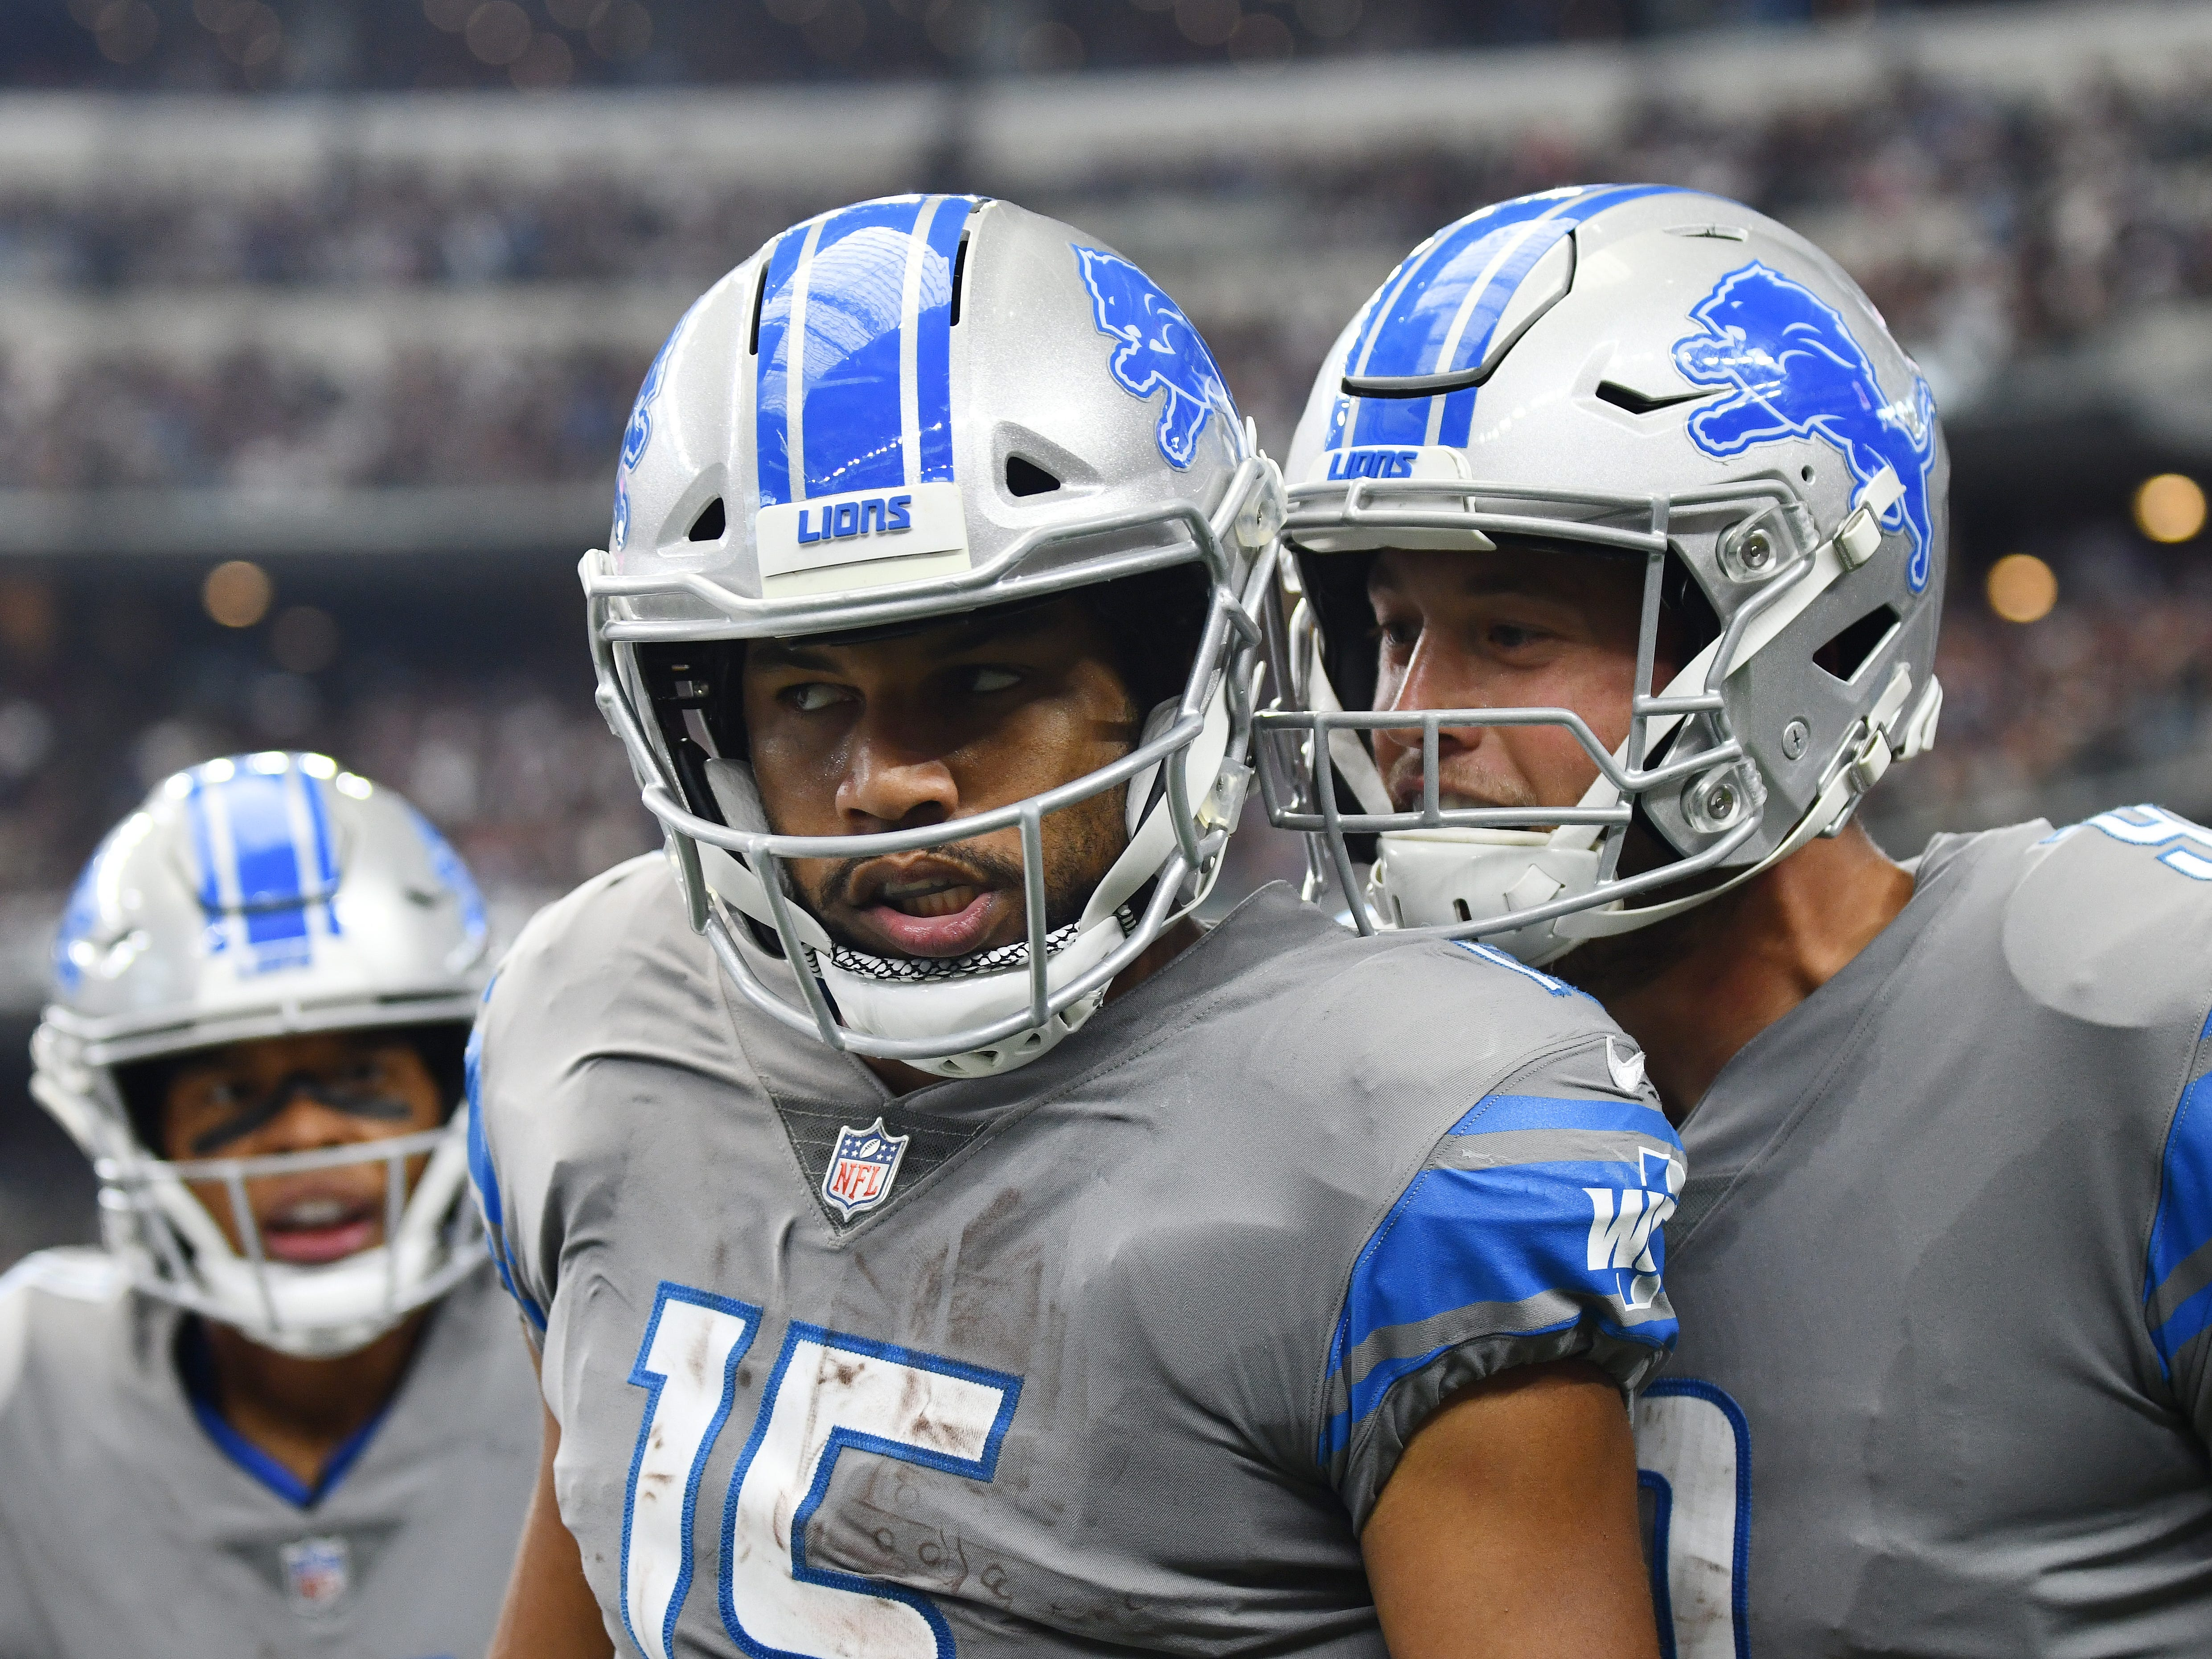 WR Golden Tate: A final grade for the former YAC king of Detroit. Tate was off to a blazing hot start before the Lions shipped him to Philadelphia at the deadline, leading the team in receptions and receiving yards. His best outings came in loses, but without him, the Lions wouldn't have been close in Dallas. Tate was doing what he did best before the trade, making tacklers miss, but drops were definitely an issue. He put five passes on the ground. Grade: B+